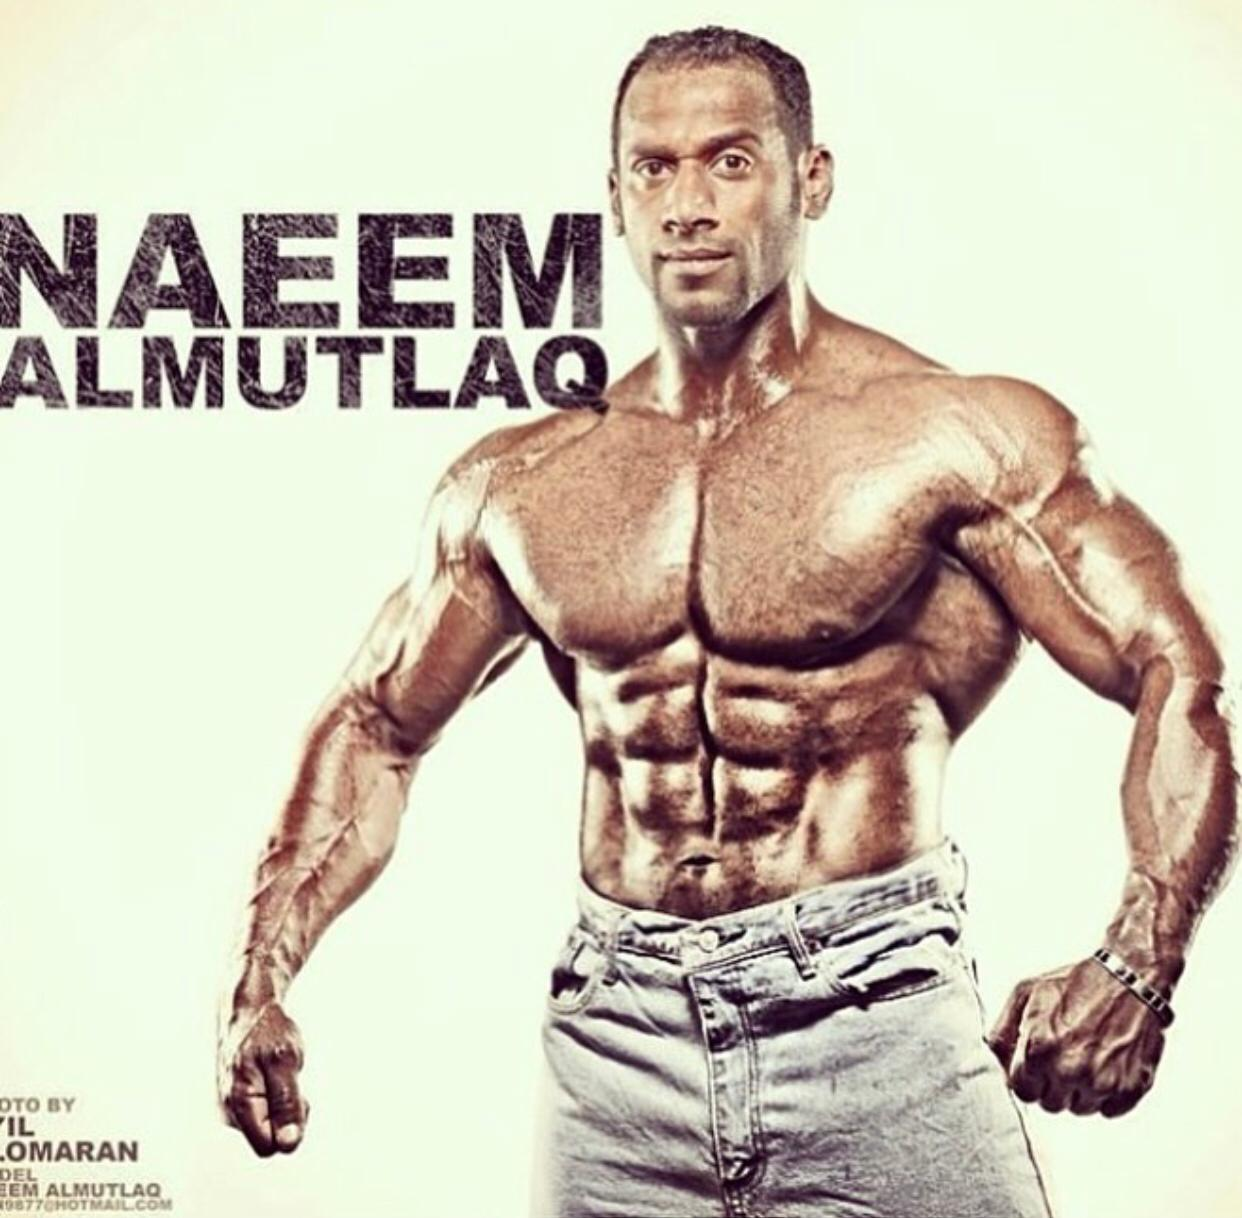 Naeem Al Mutlaq, one of the best personal trainers in the world